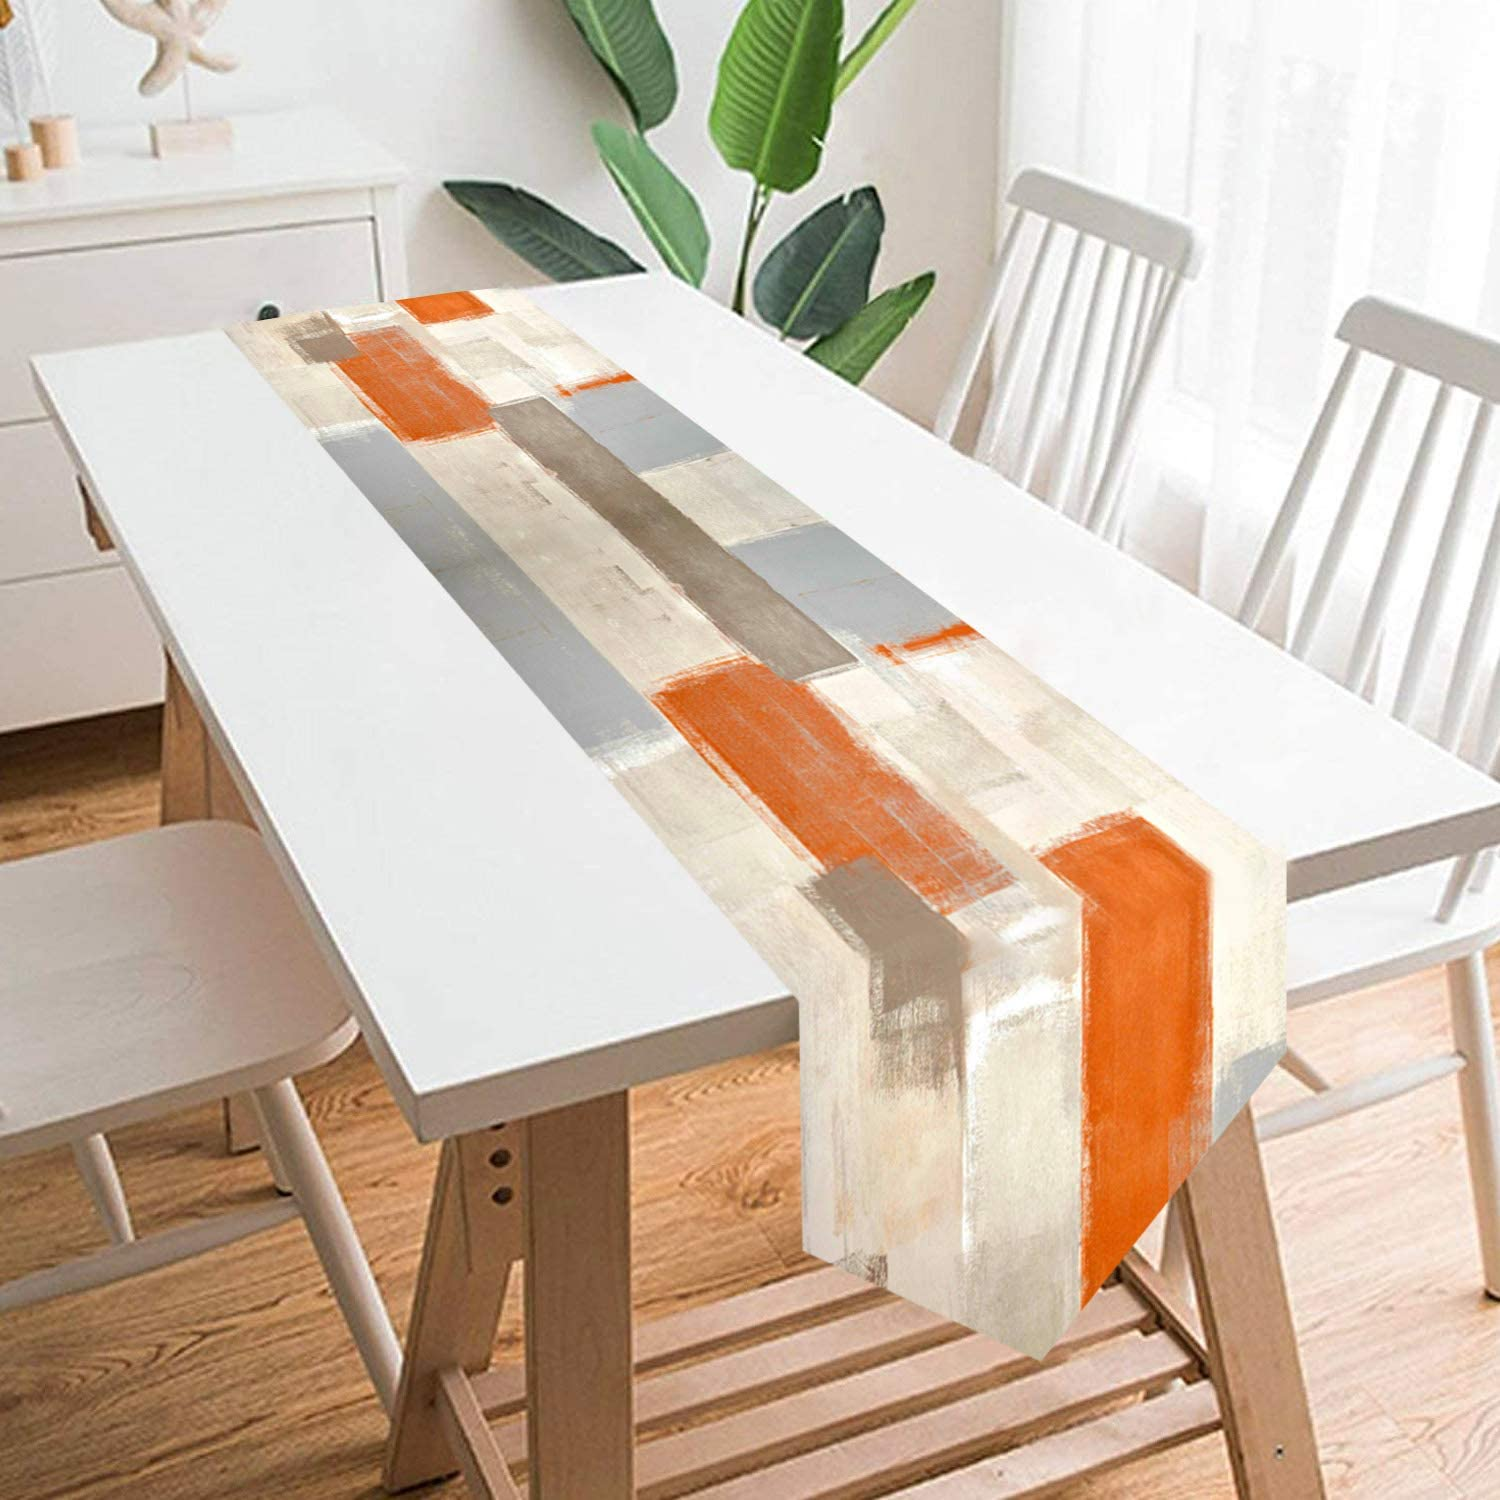 GALMAXS7 Farmhouse Style Burlap Table Runner Modern Art Table Runner Orange and Grey Abstract Art Painting Table Runners for Farmhouse Kitchen, Dinner Holiday Parties Wedding Decor - 13 X 70 Inch